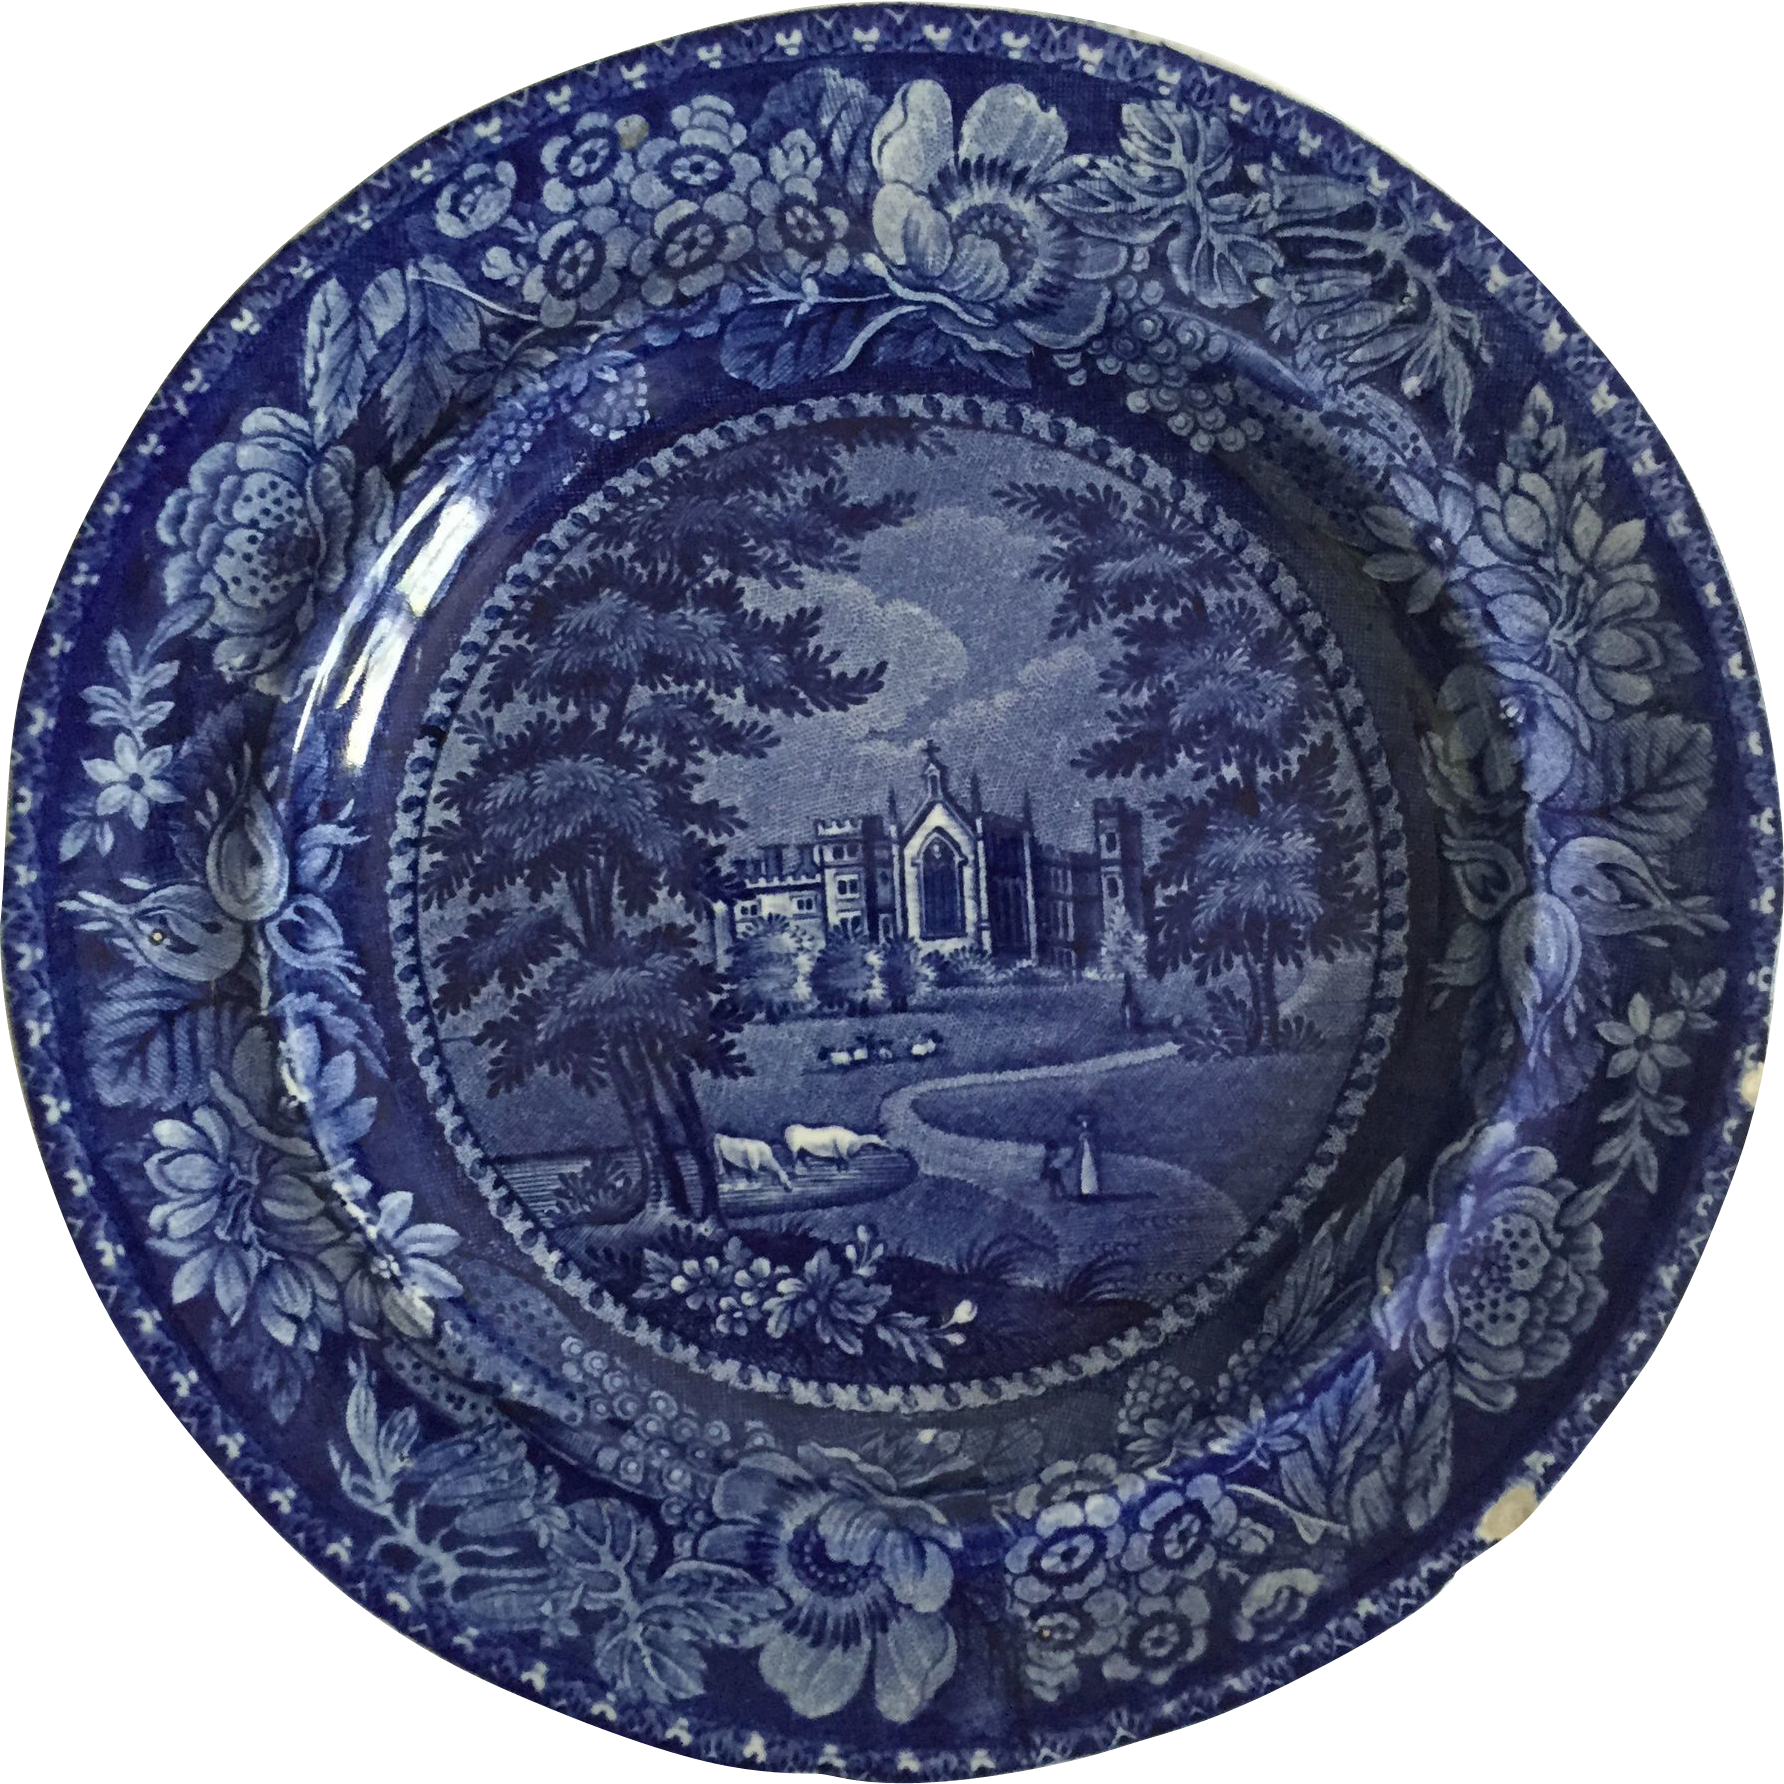 English Historical Dark Blue Plate, 1822-1840